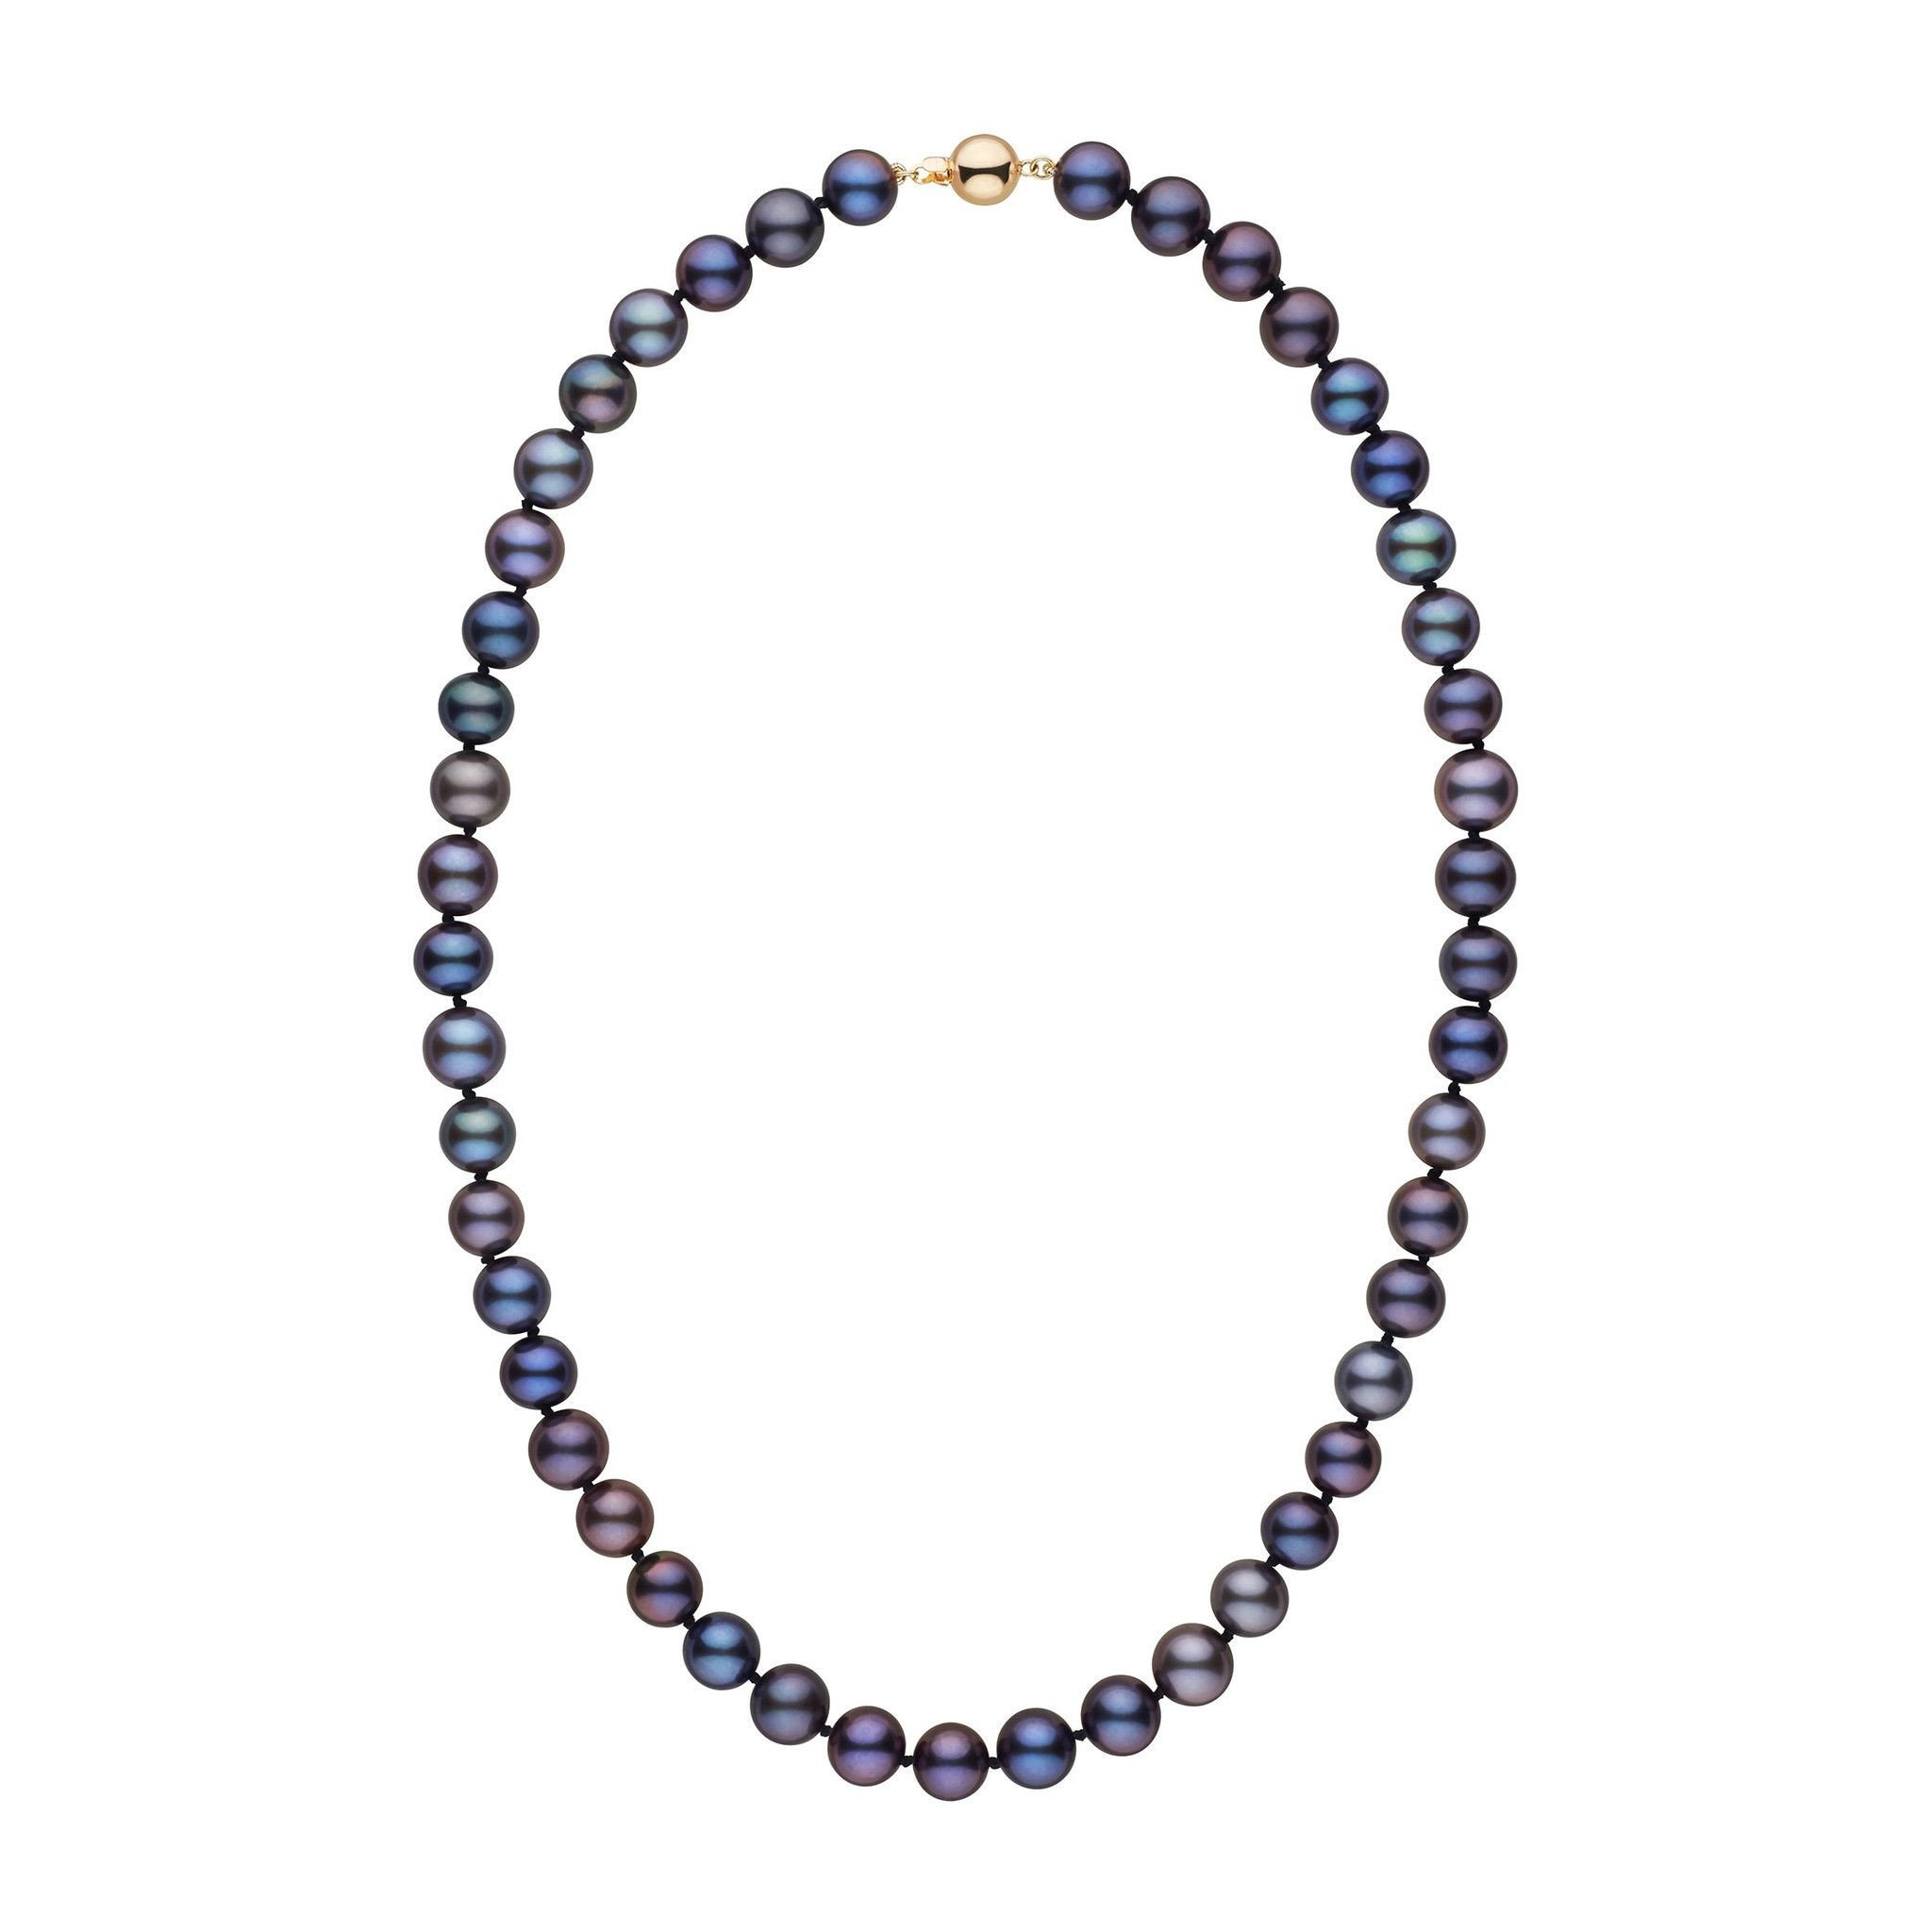 8.5-9.0 mm 16 Inch AAA Black Freshwater Pearl Necklace by Pearl Paradise